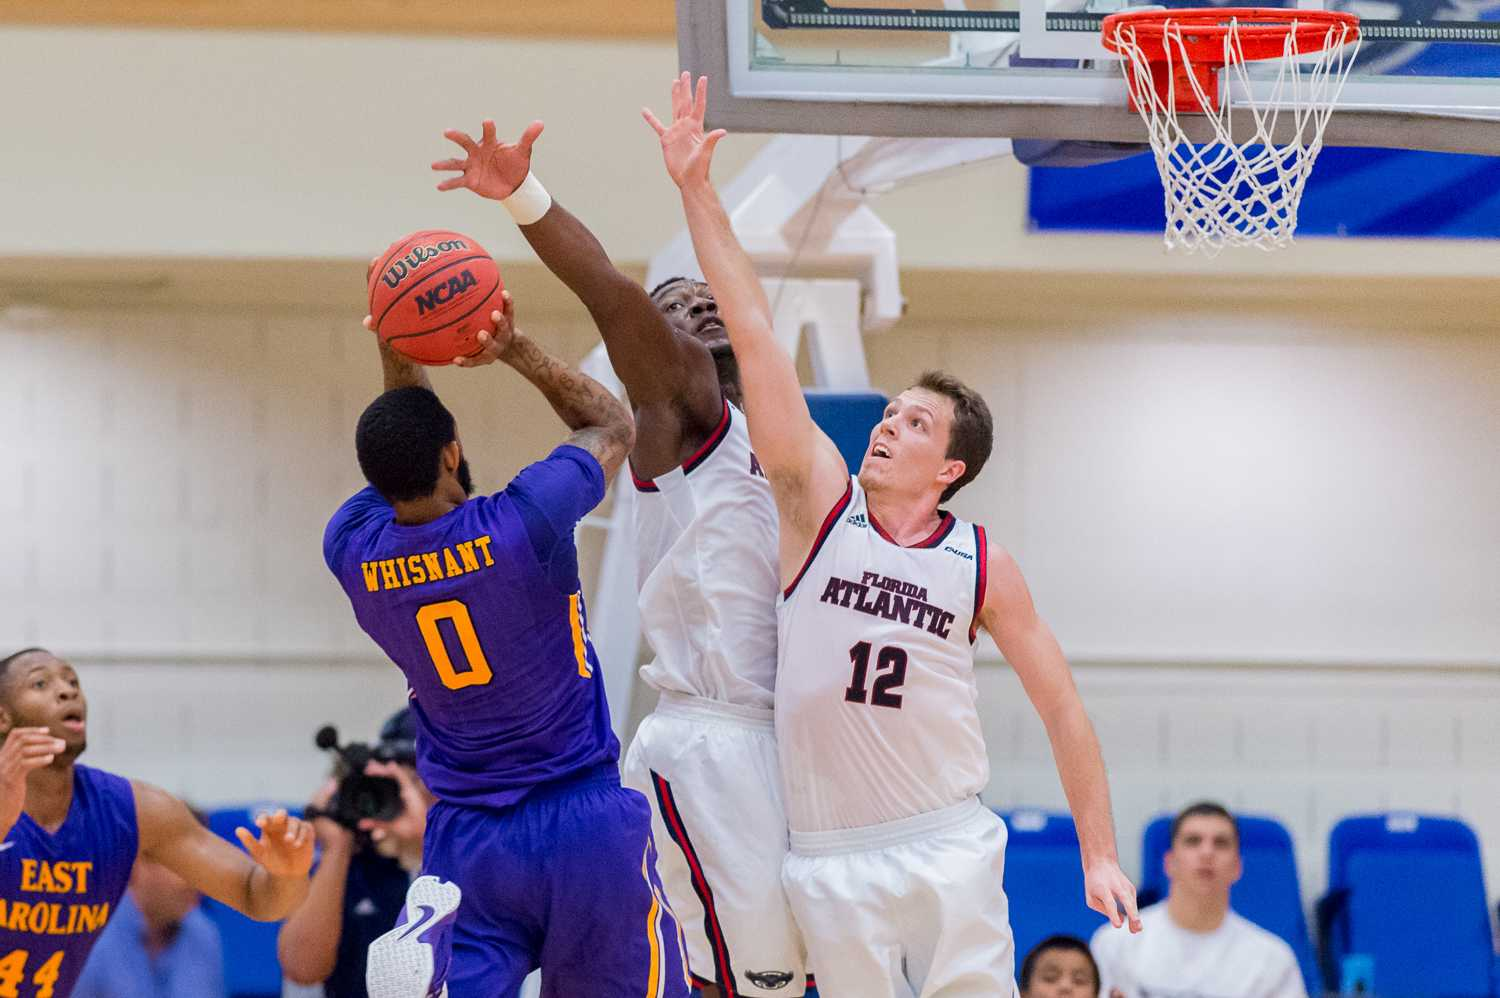 FAU guards Jackson Trapp and C.J. Turman attempt to stop Eastern Carolina guard Terry Whisnant from scoring.